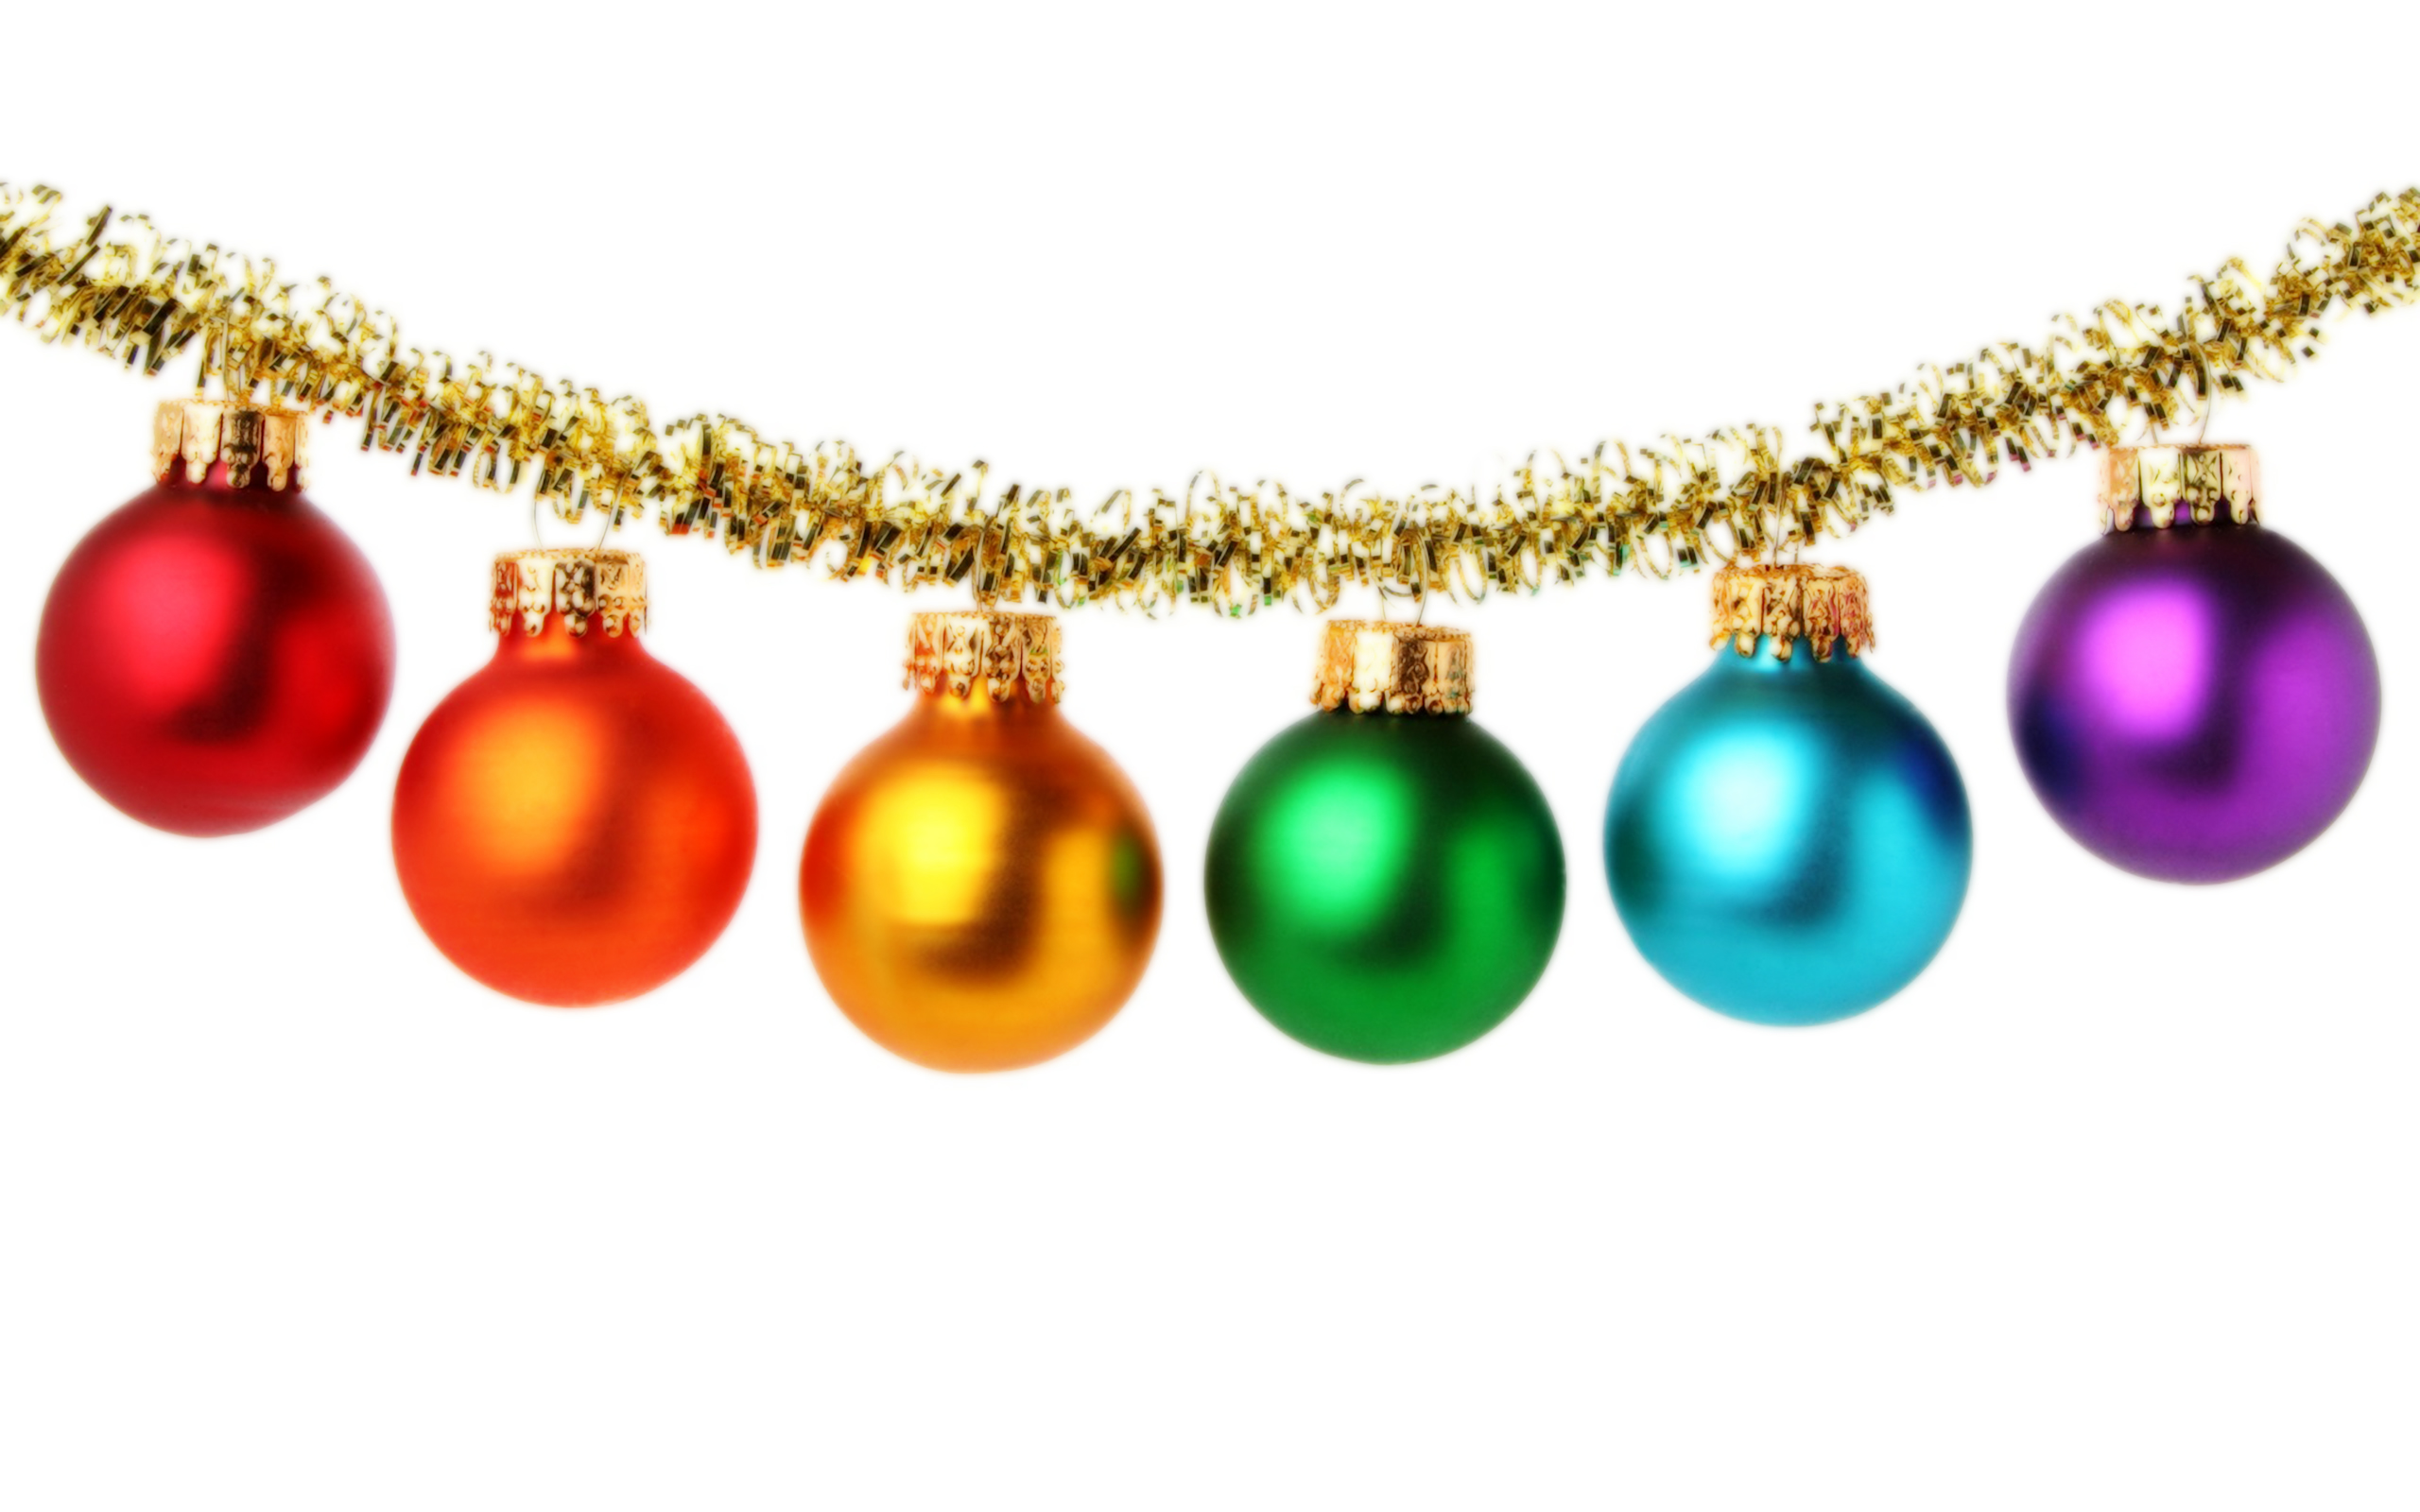 Christmas baubles png 32848 free icons and png backgrounds - Bolas gigantes de navidad ...